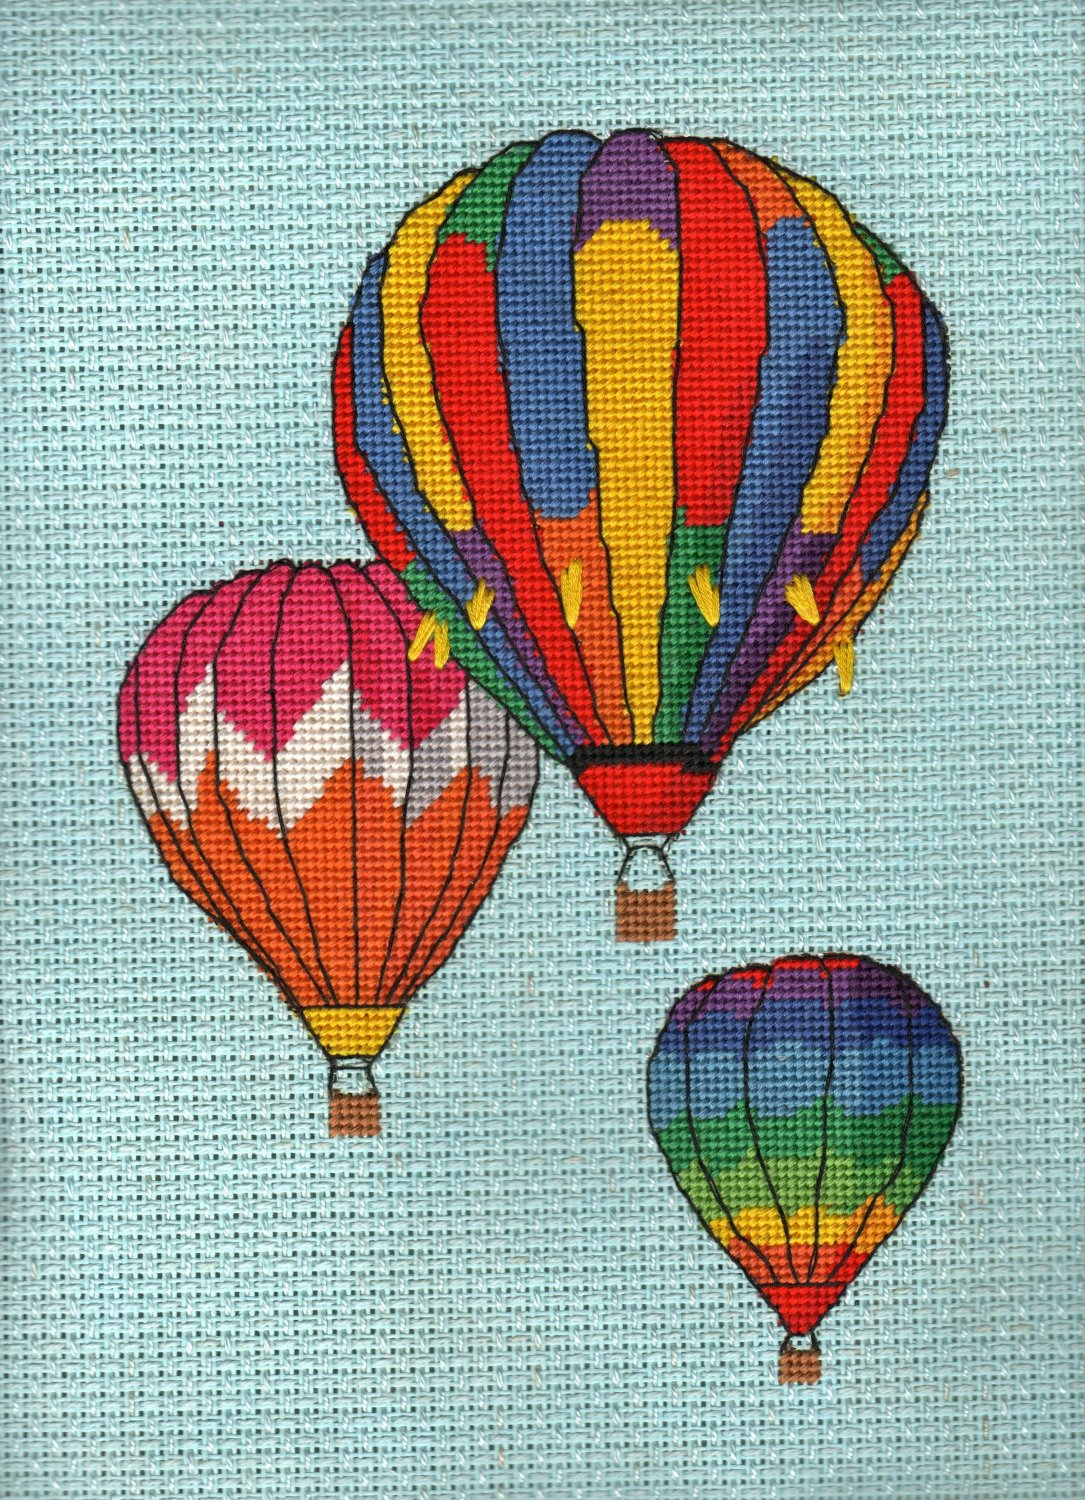 Trio of Balloons in Flight Completed Needlepoint